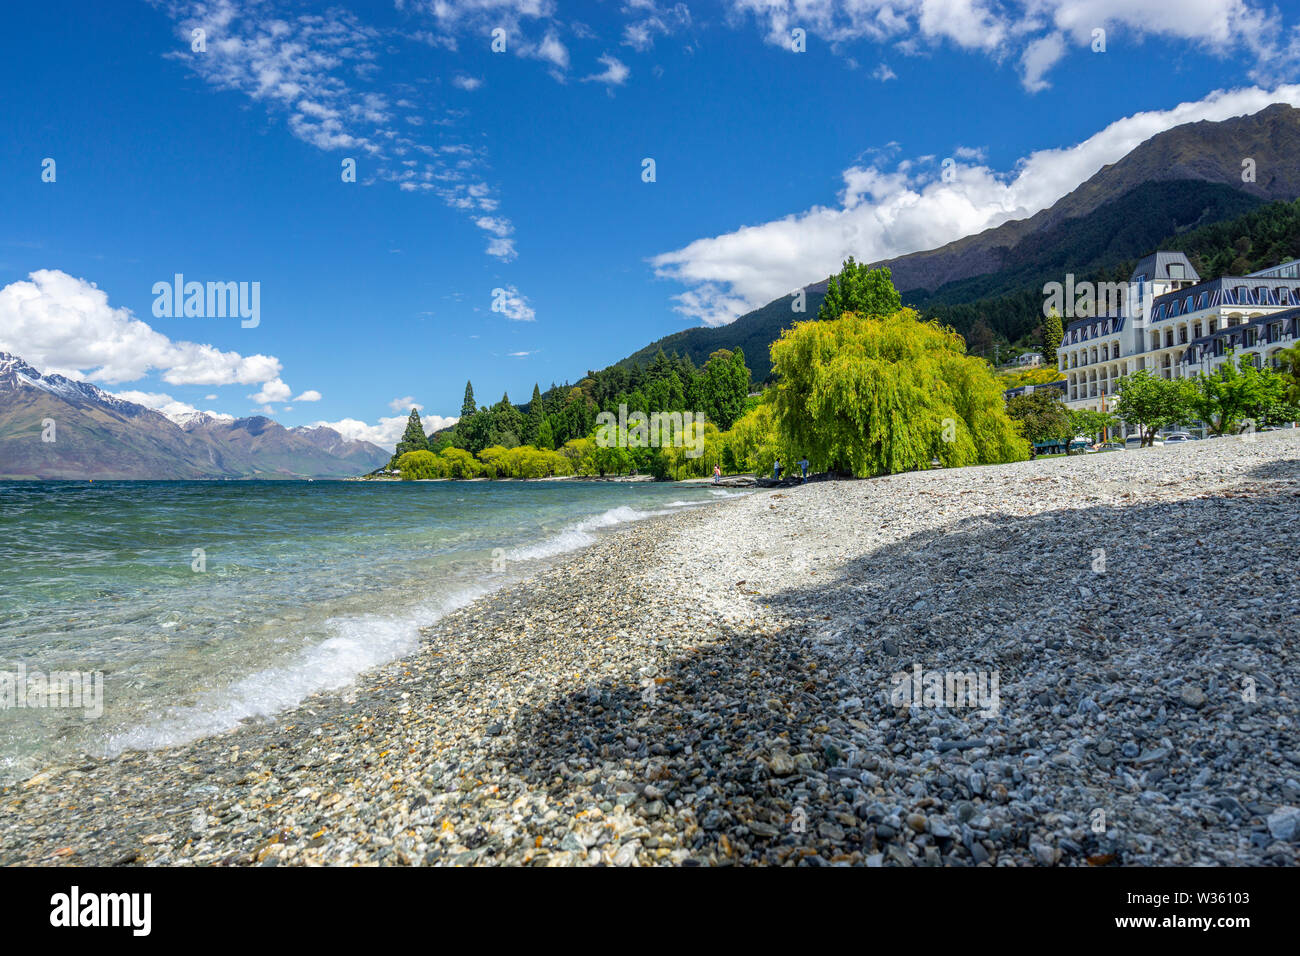 Stoney shoreline of Lake Wakatipu with mountains in background, Queenstown, South Island New Zealand Stock Photo